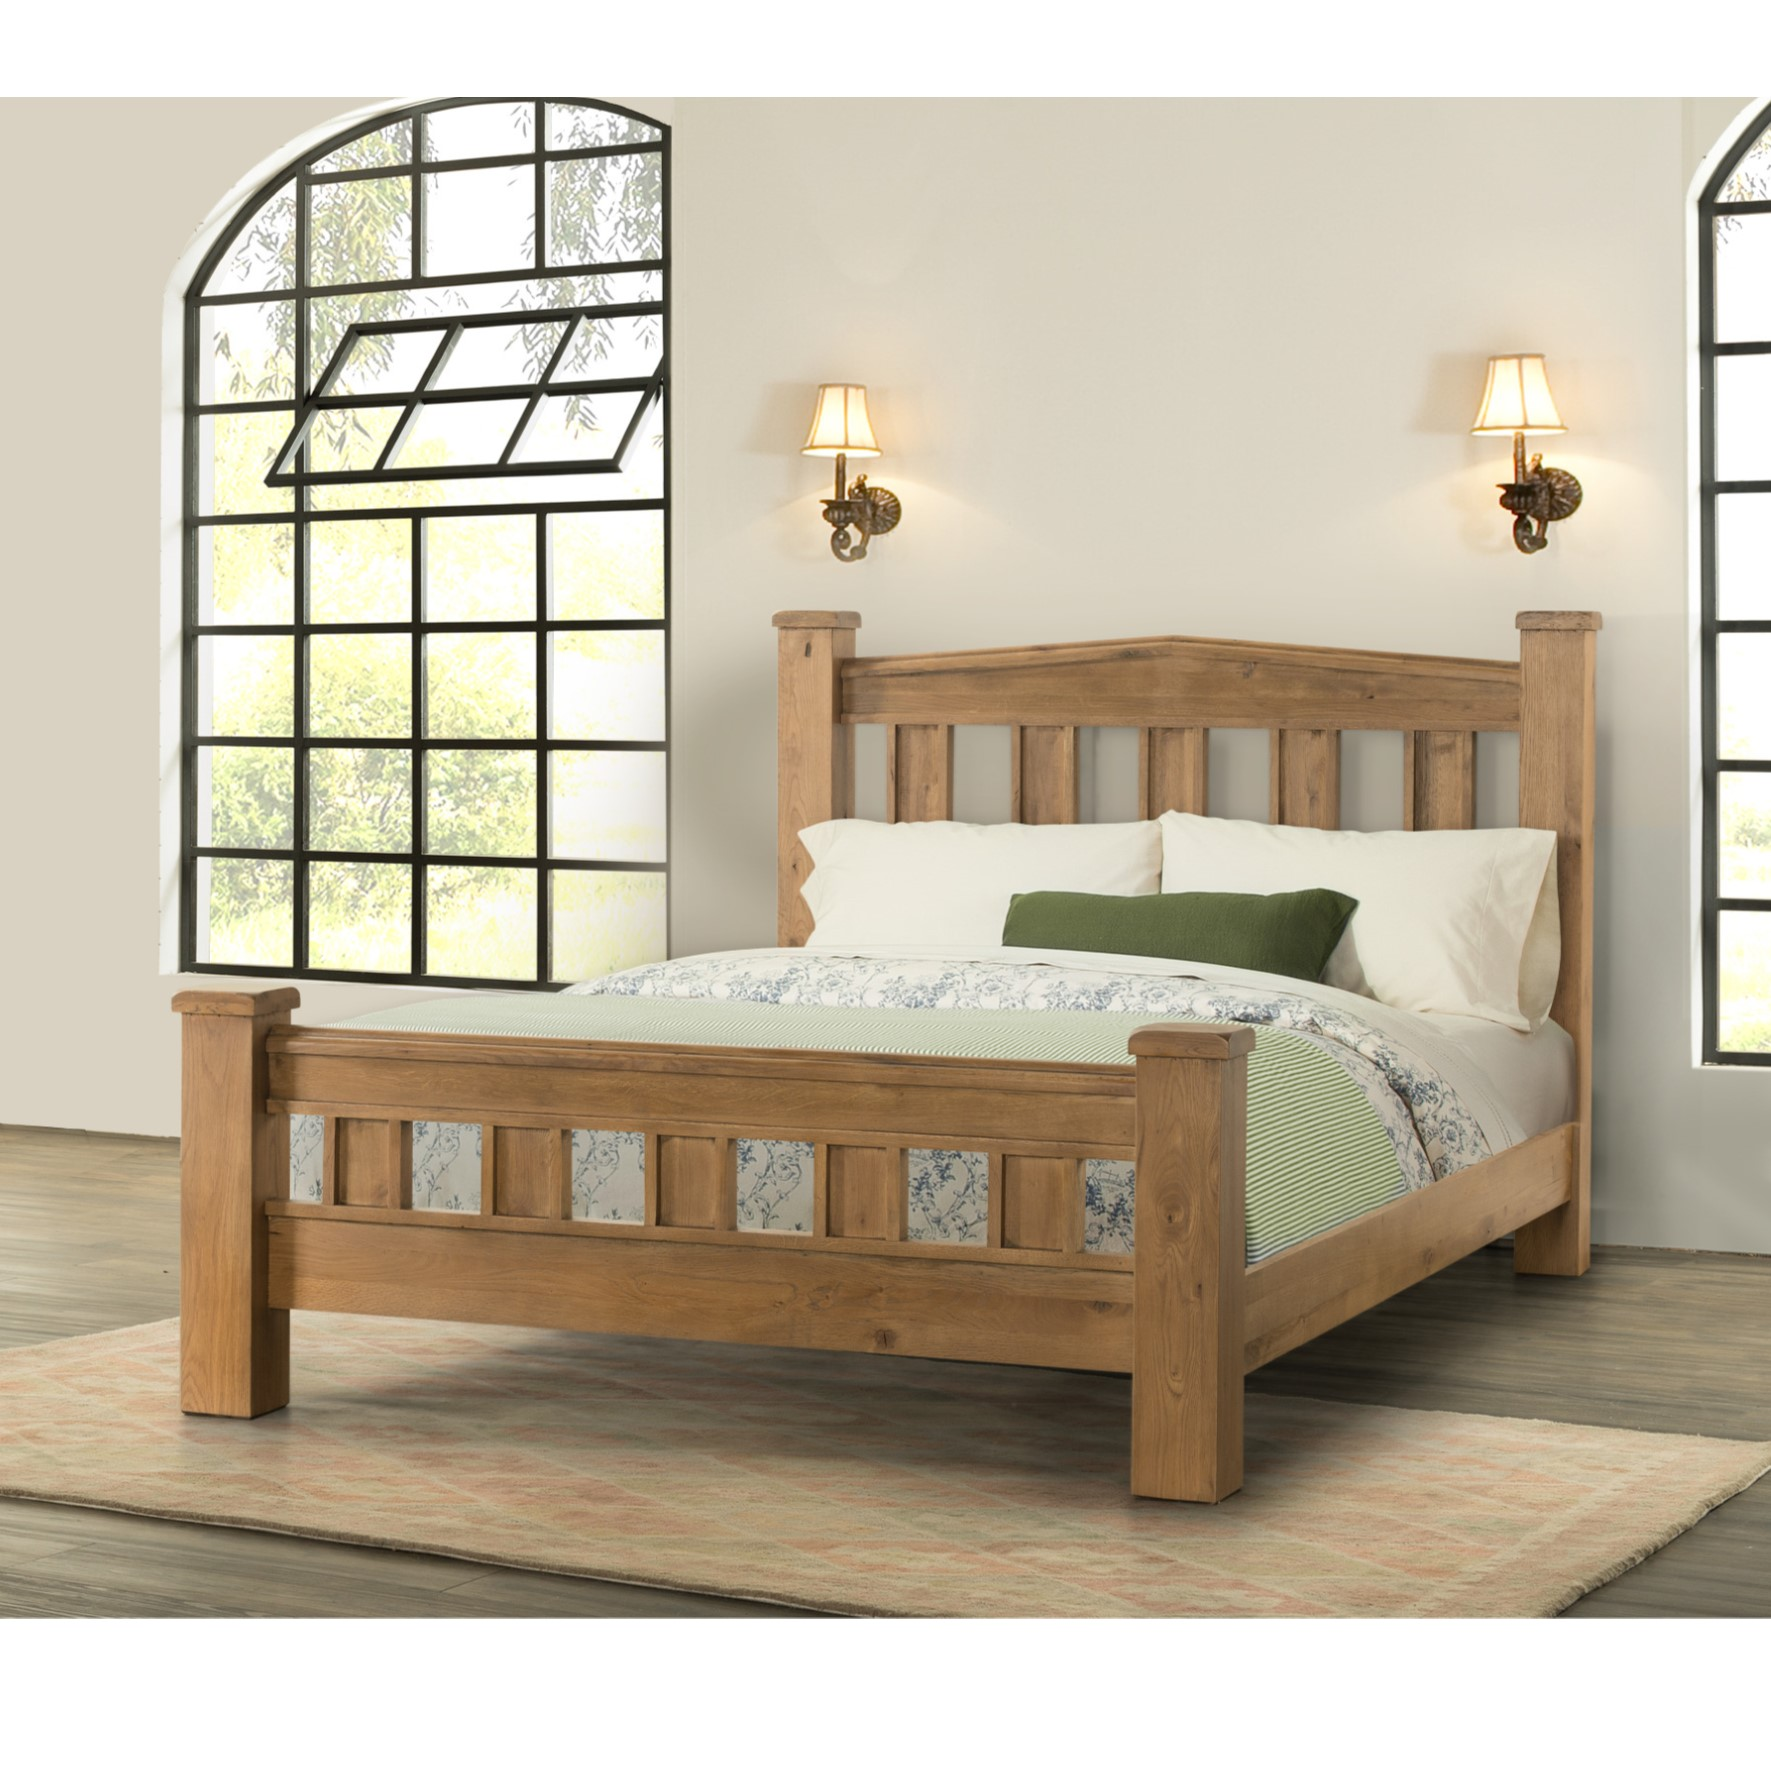 Harlow - Chunky 5ft Bed